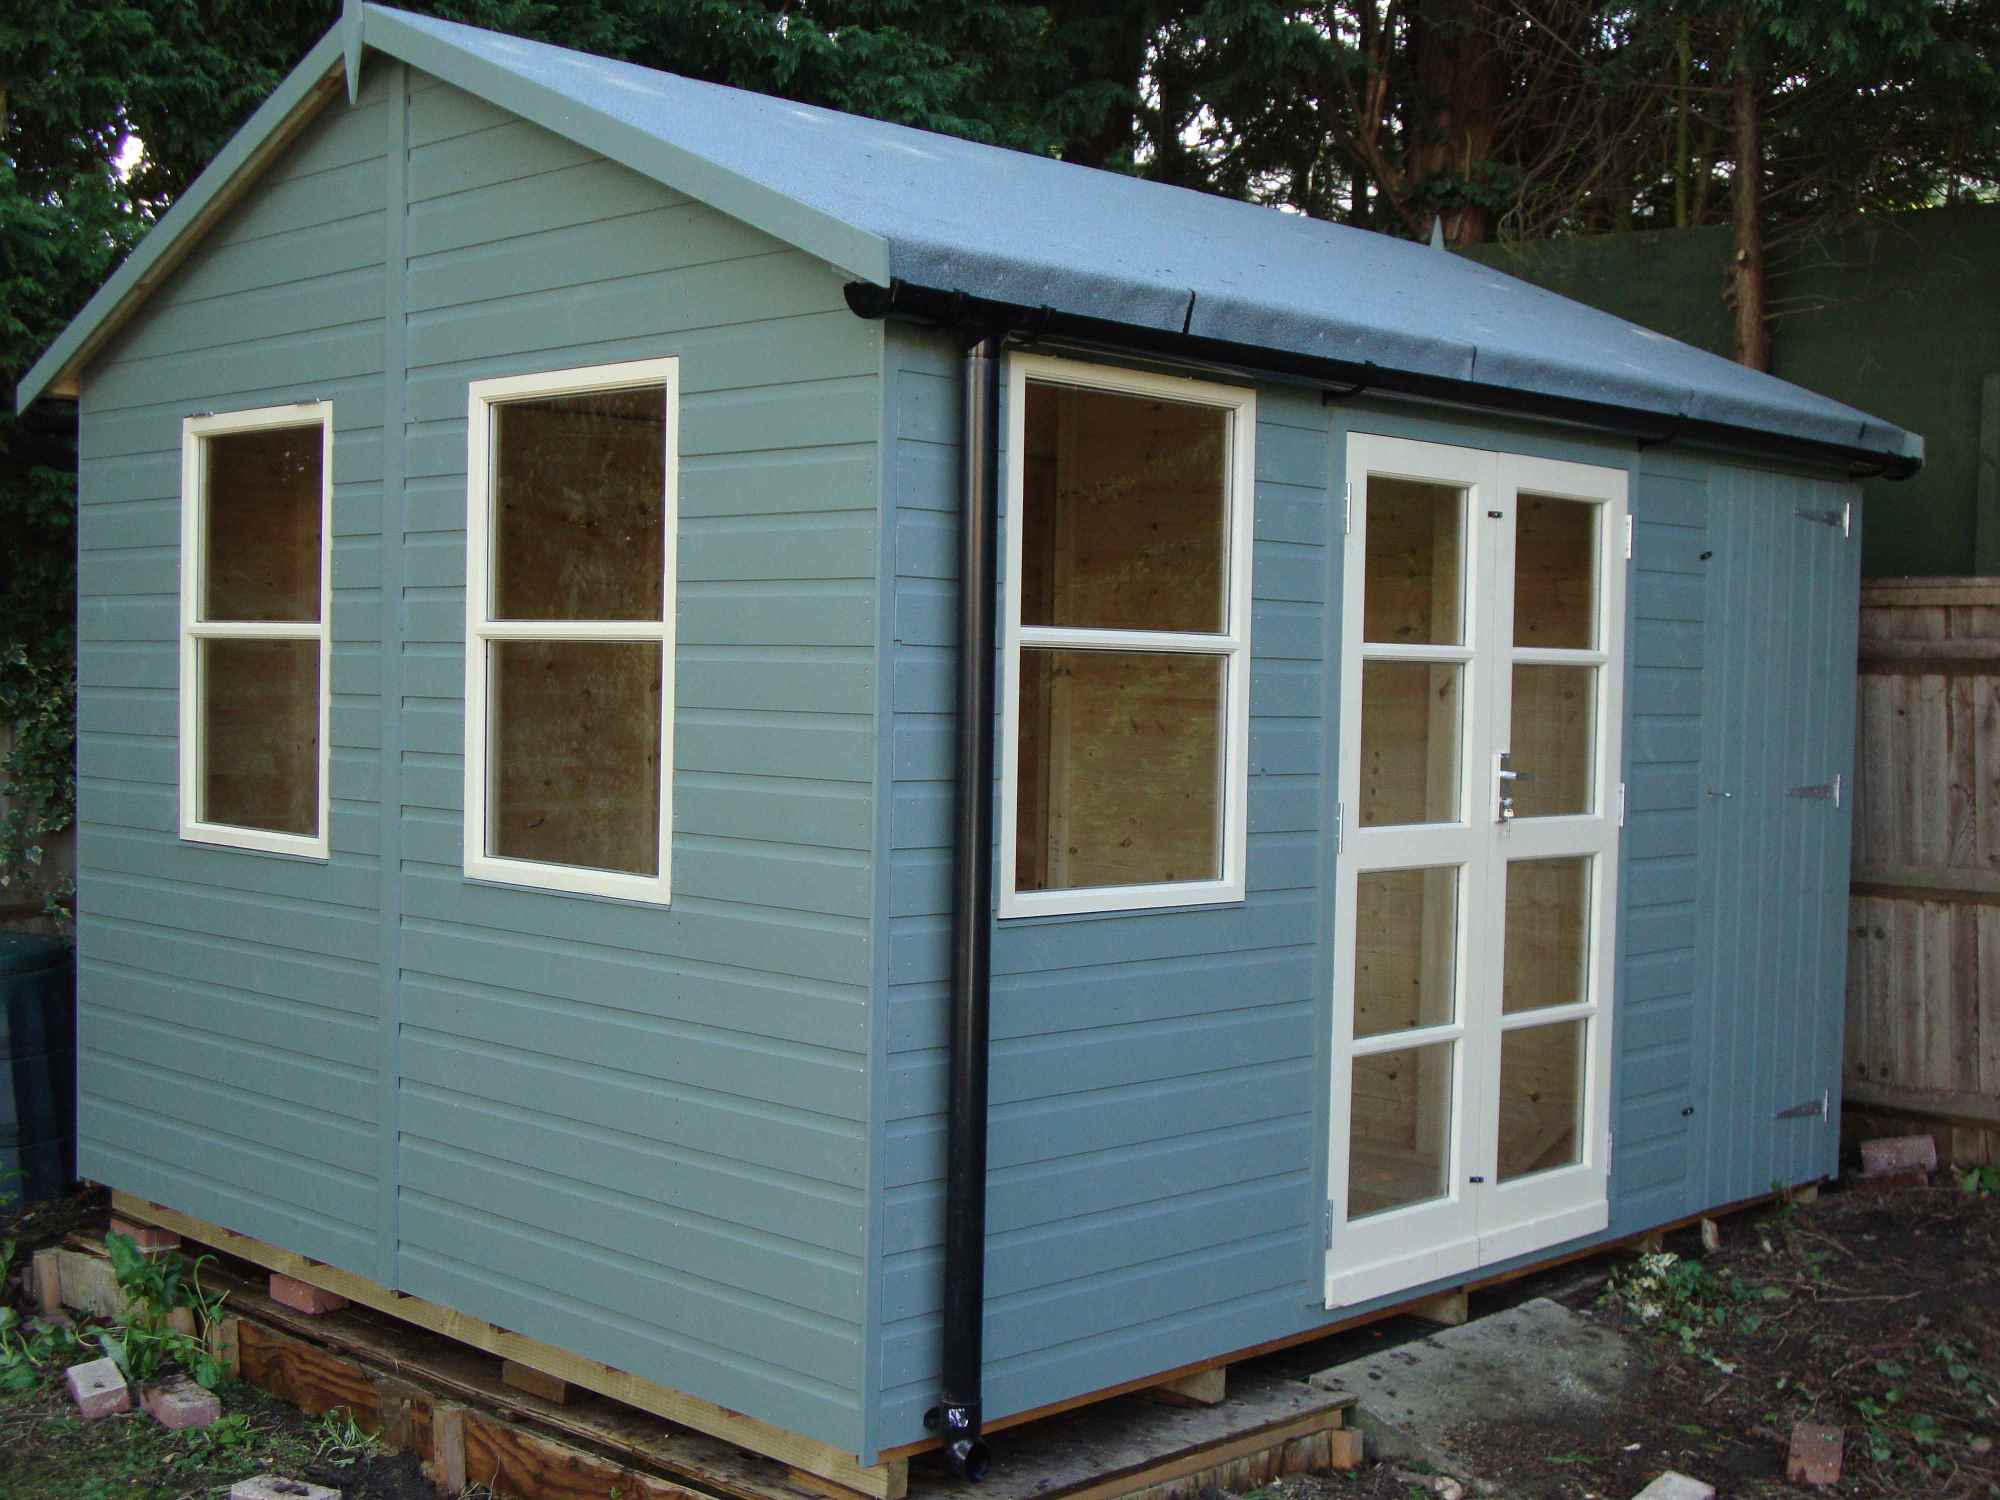 garden building. Deluxe Studio 12x10, Heavy Torch-On Felt, Shed Compartment, Guttering, Shades Garden Building N